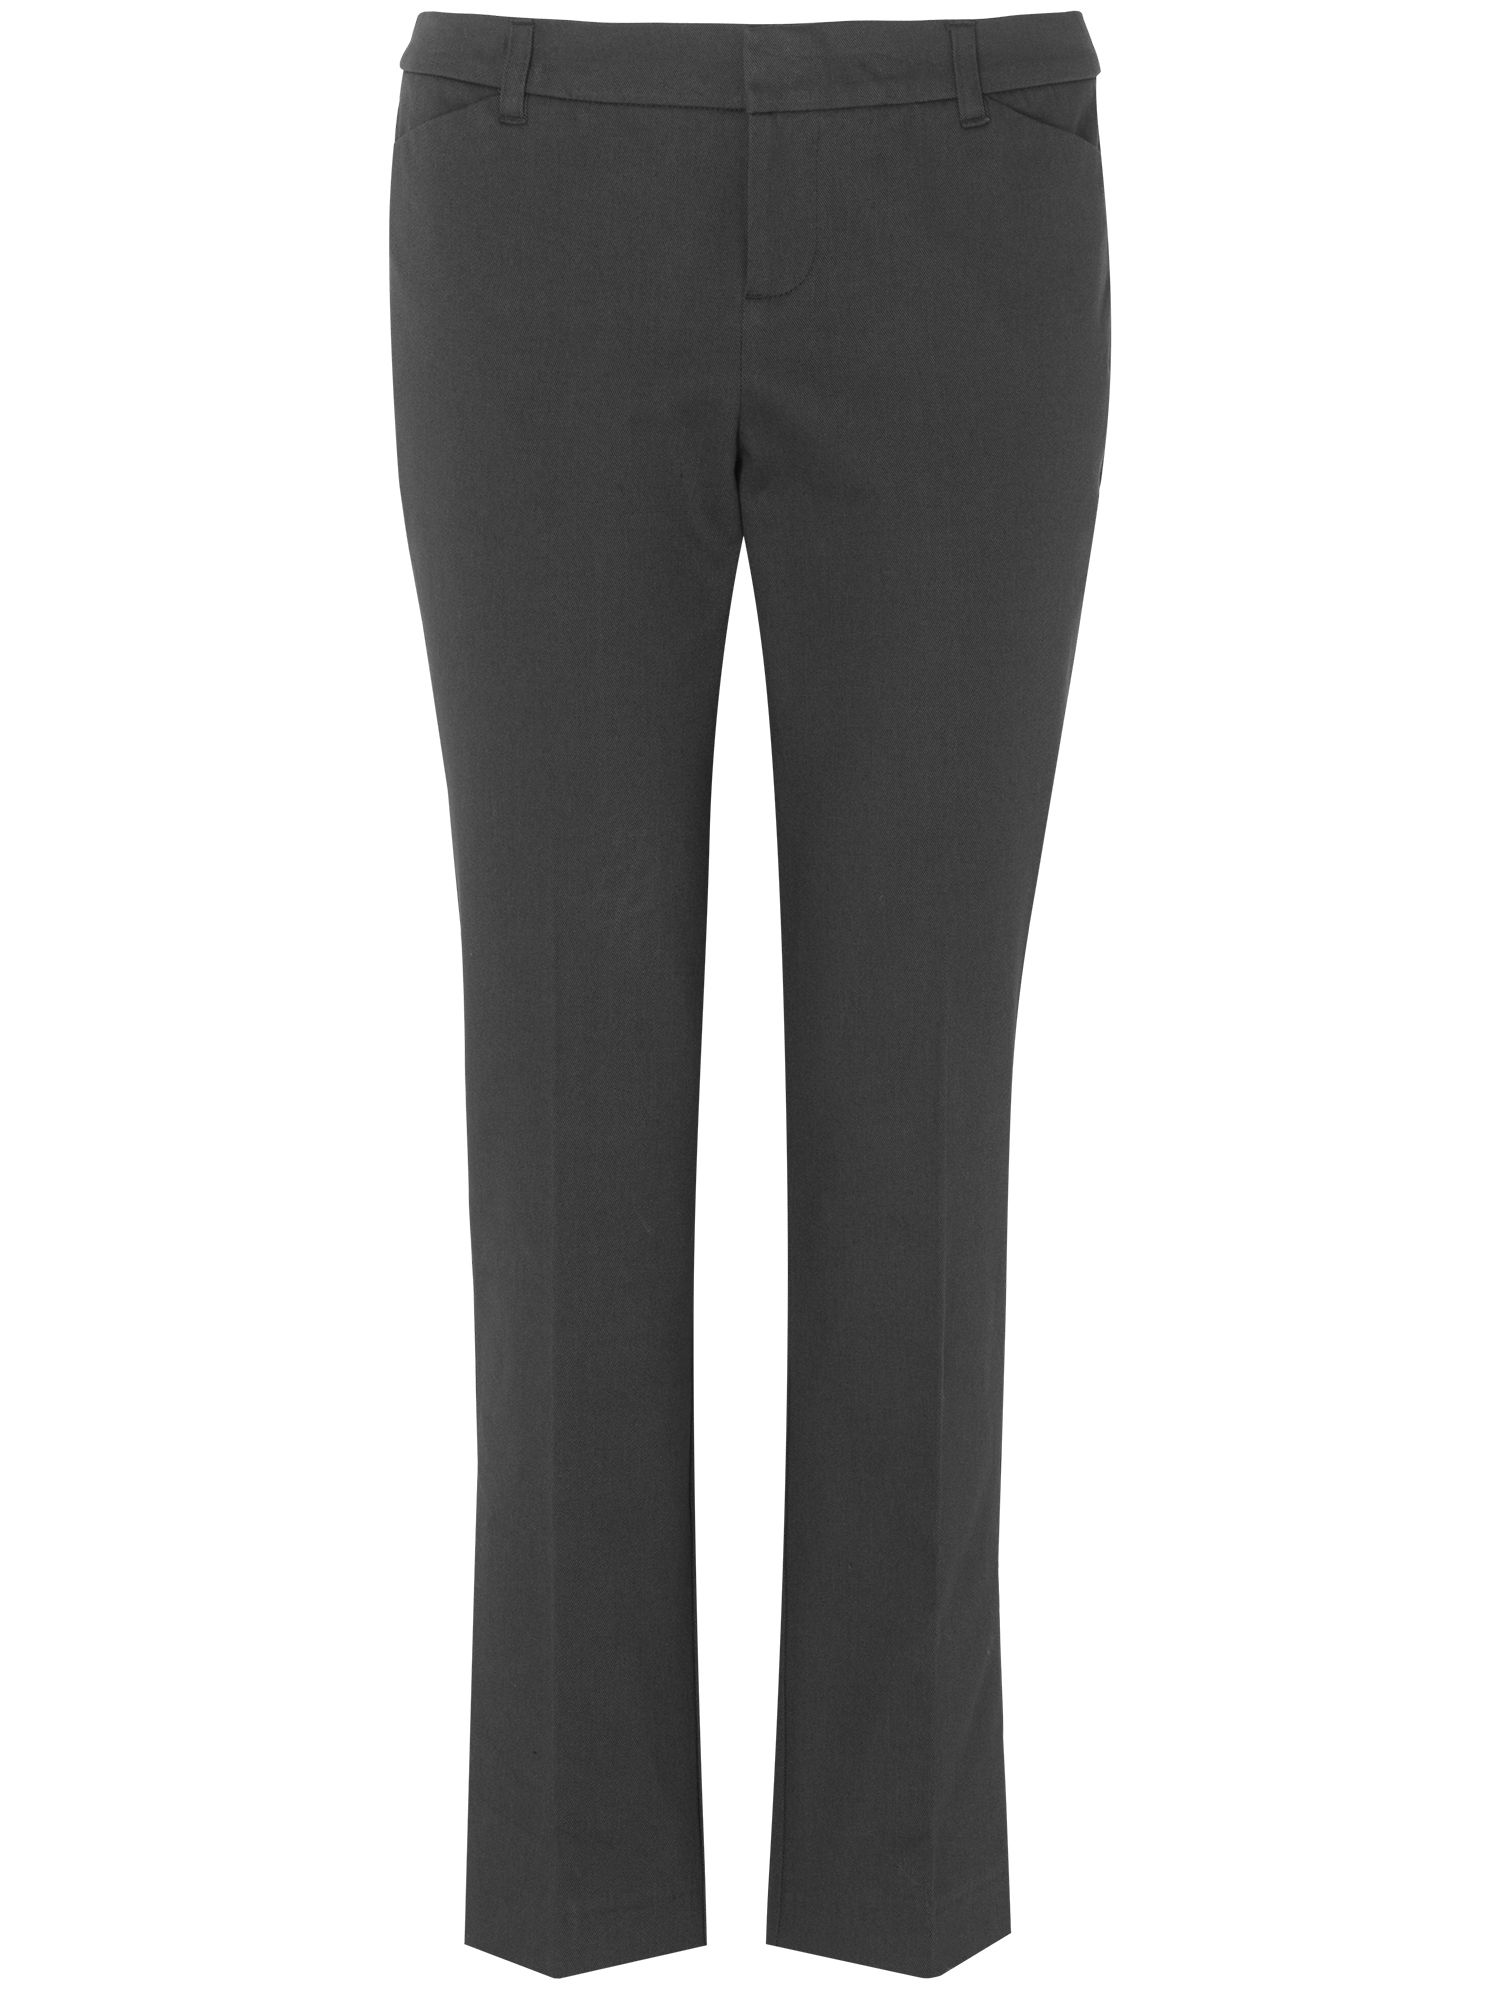 Zahara 7/8 trousers